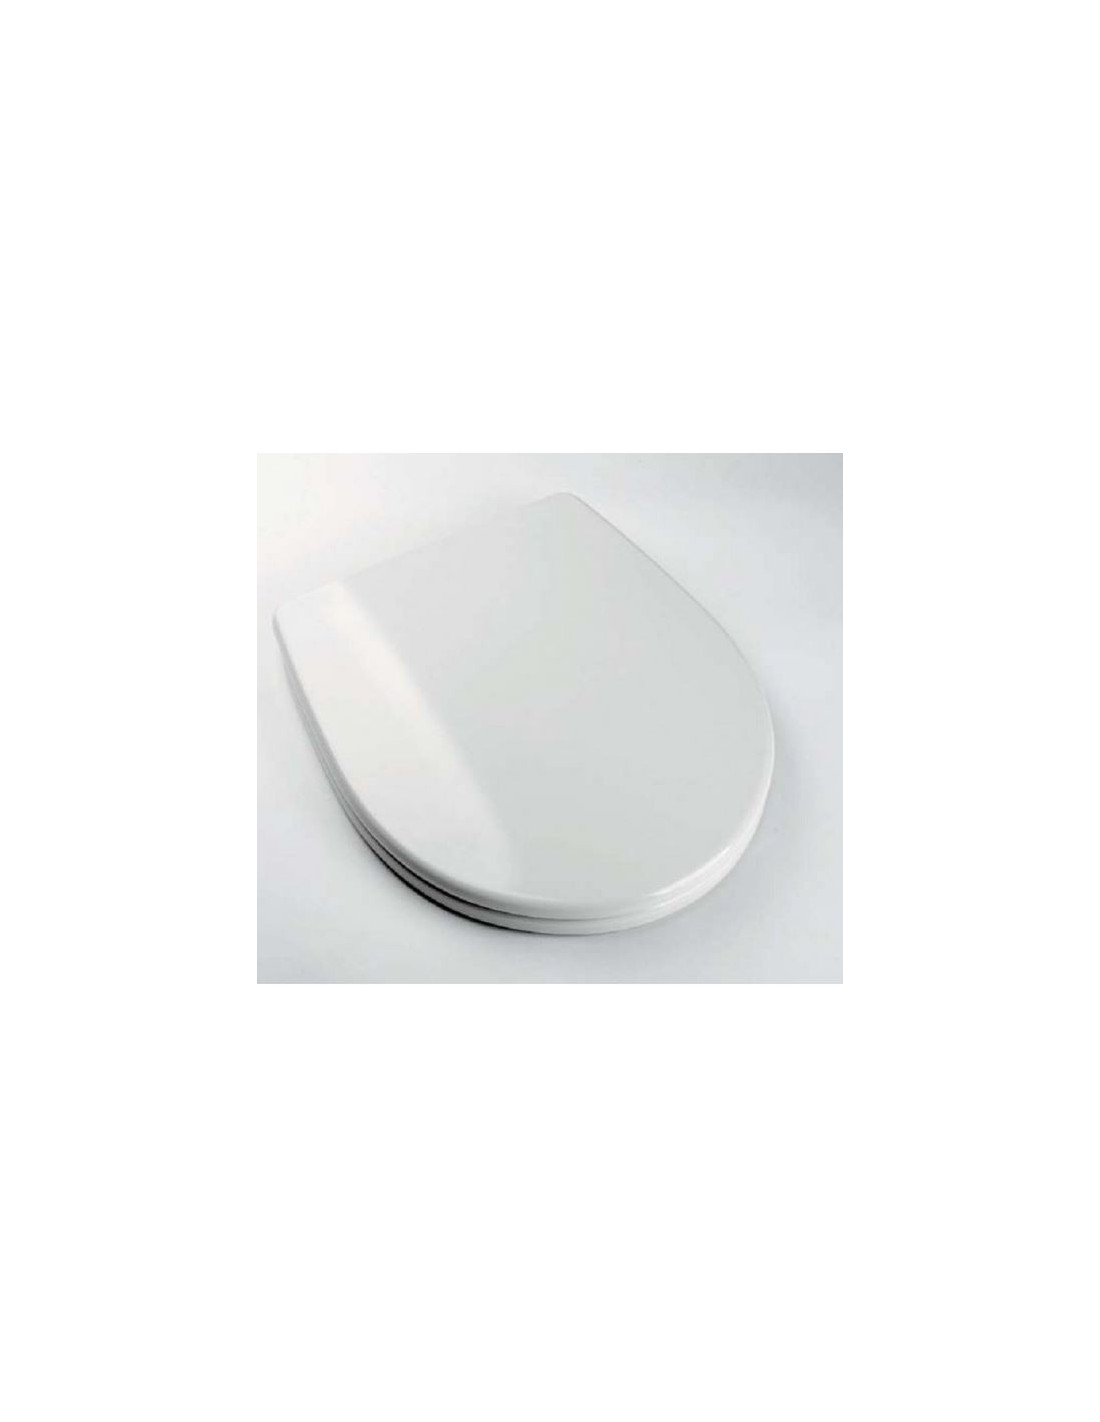 Sedile Wc Ideal Standard.Sedile Wc Ideal Standard Reflections Adaptable In Duroplast